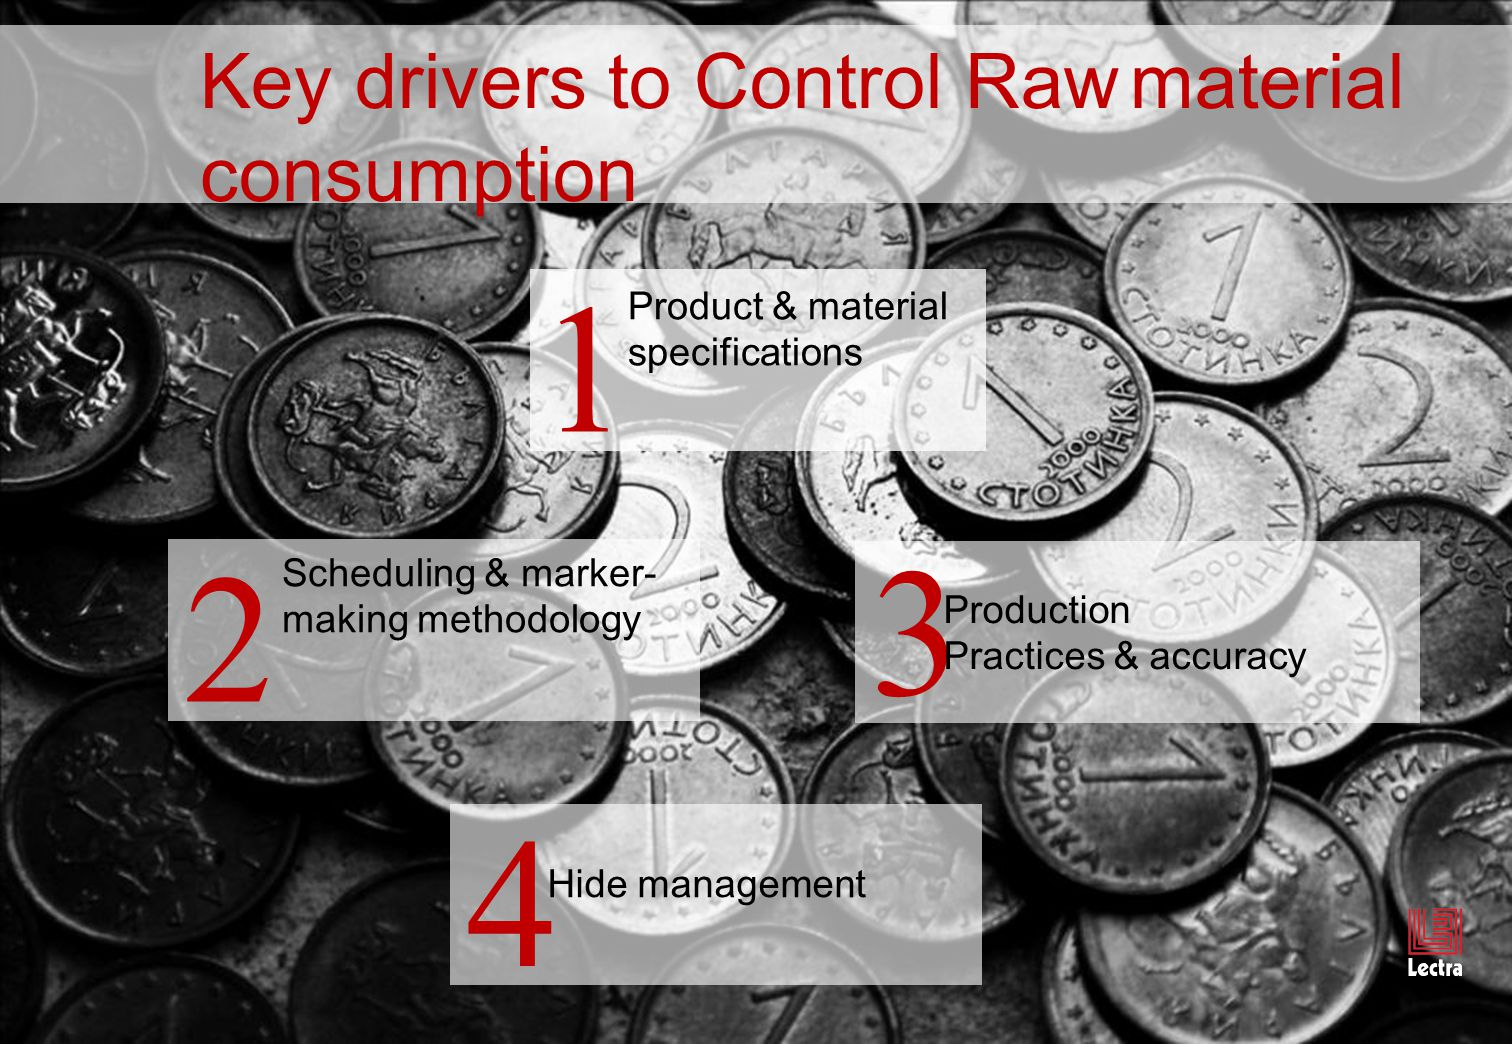 Key drivers to Control Raw material consumption 1 Product & material specifications 2 Scheduling & marker- making methodology 3 Production Practices & accuracy 4 Hide management